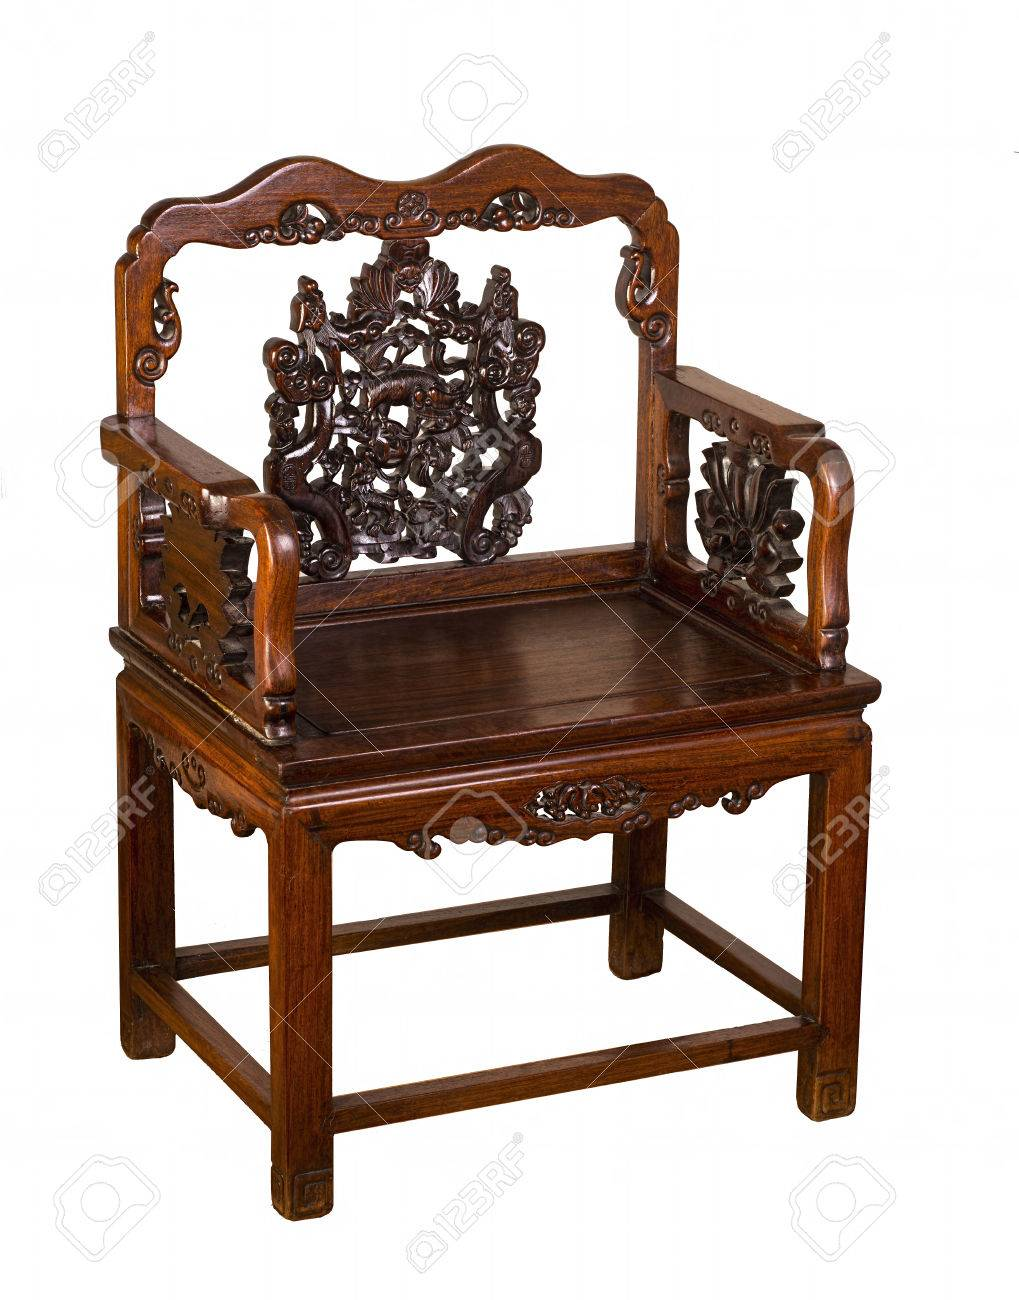 Antique Hung-Mu Chinese chair made in the early 1800's. Stock Photo -  29460635 - Antique Hung-Mu Chinese Chair Made In The Early 1800's. Stock